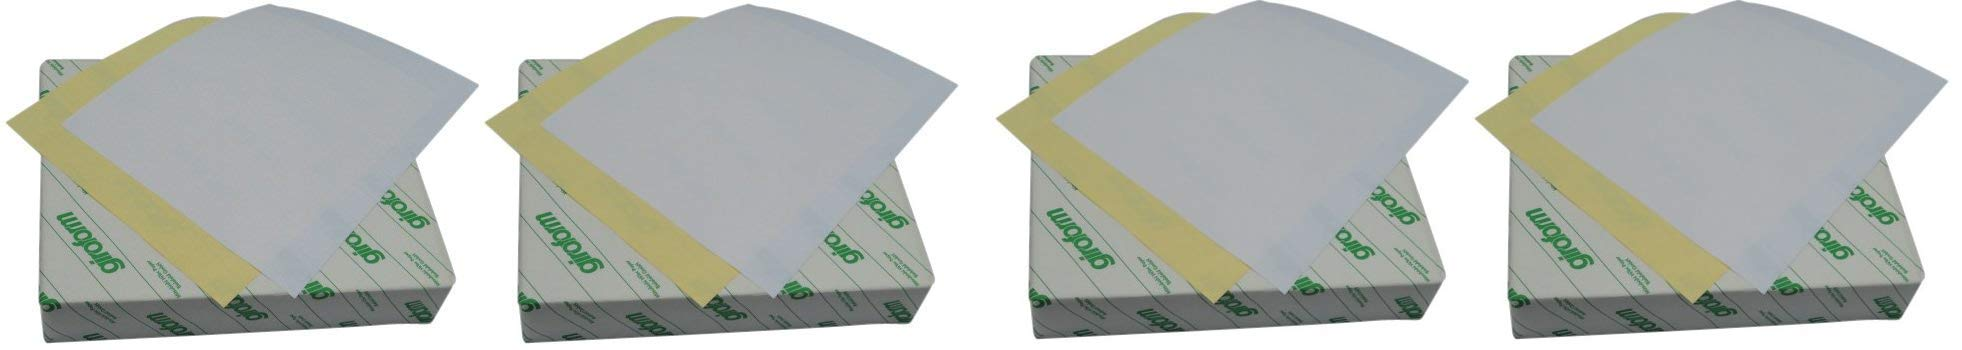 Global Lab Supply 102-8511-1 Pre-Collated Giroform Hitec 2 Part Carbonless Paper, 8-1/2'' Length x 11'' Width (4-Pack)